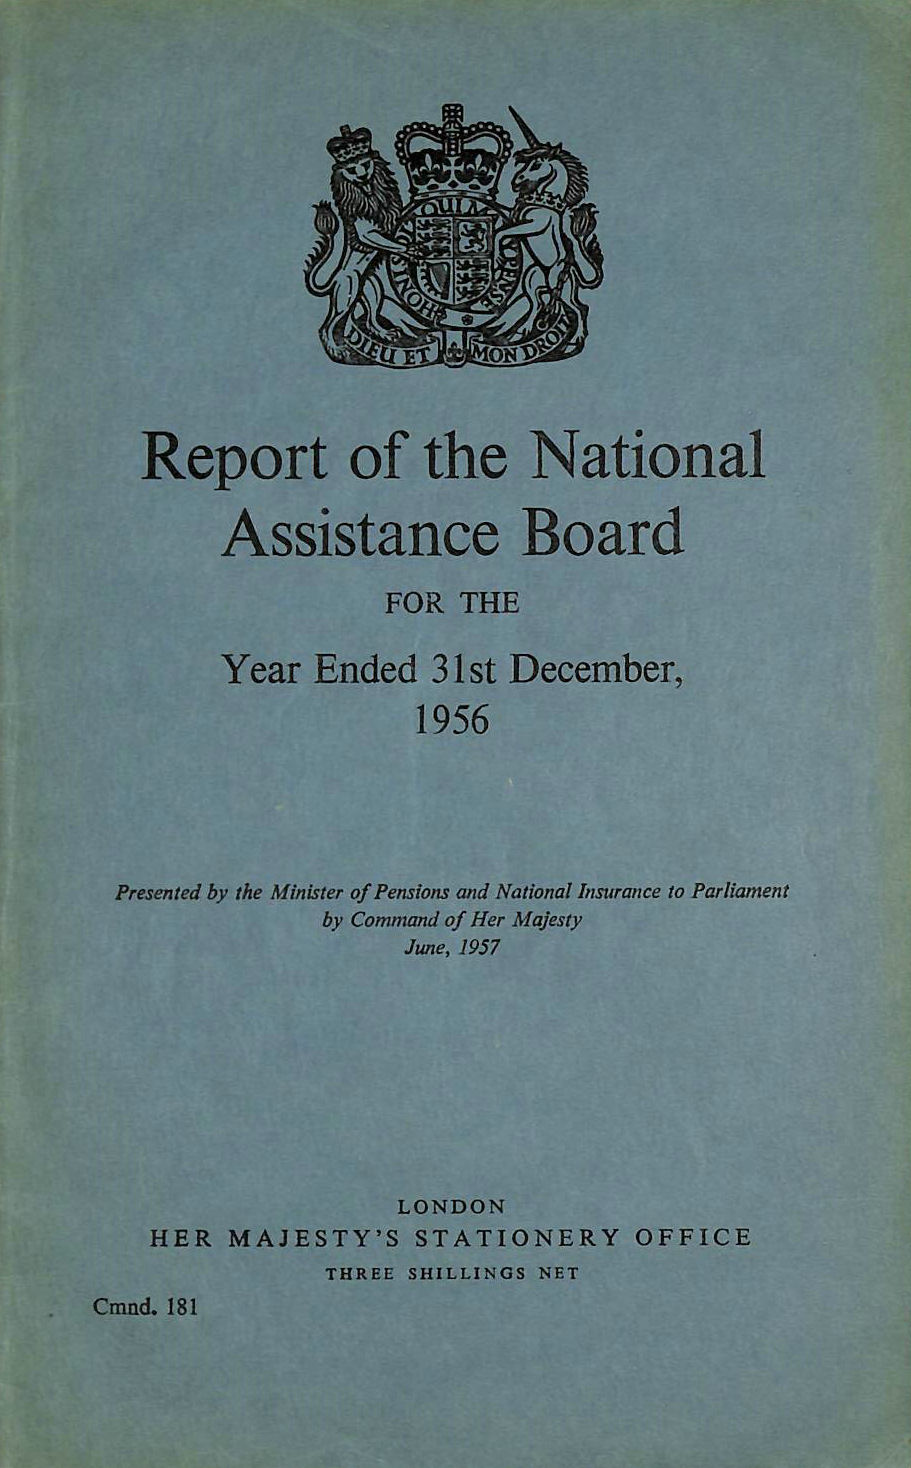 Image for Report of the National Assistance Board 1956